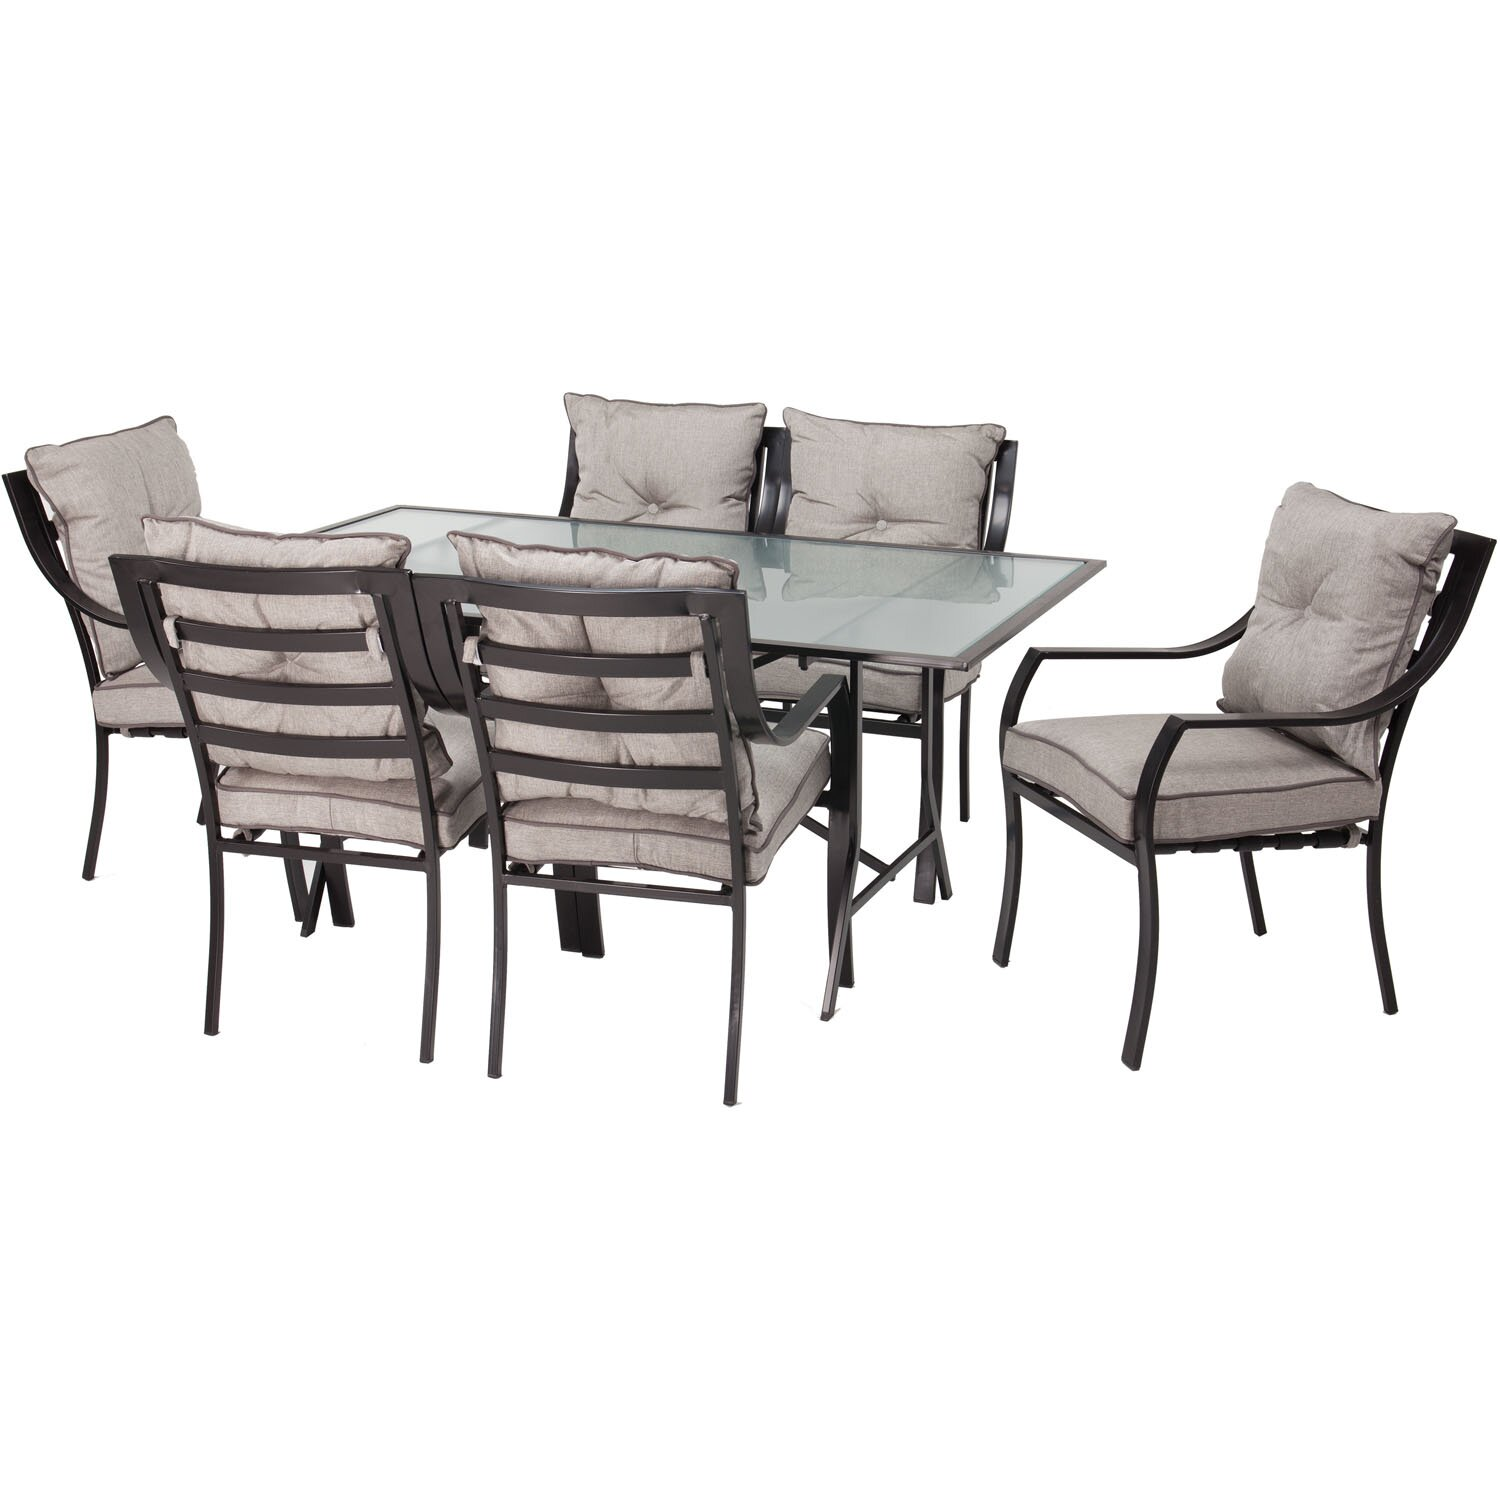 Hanover Lavallette 7 Piece Dining Set With Cushions